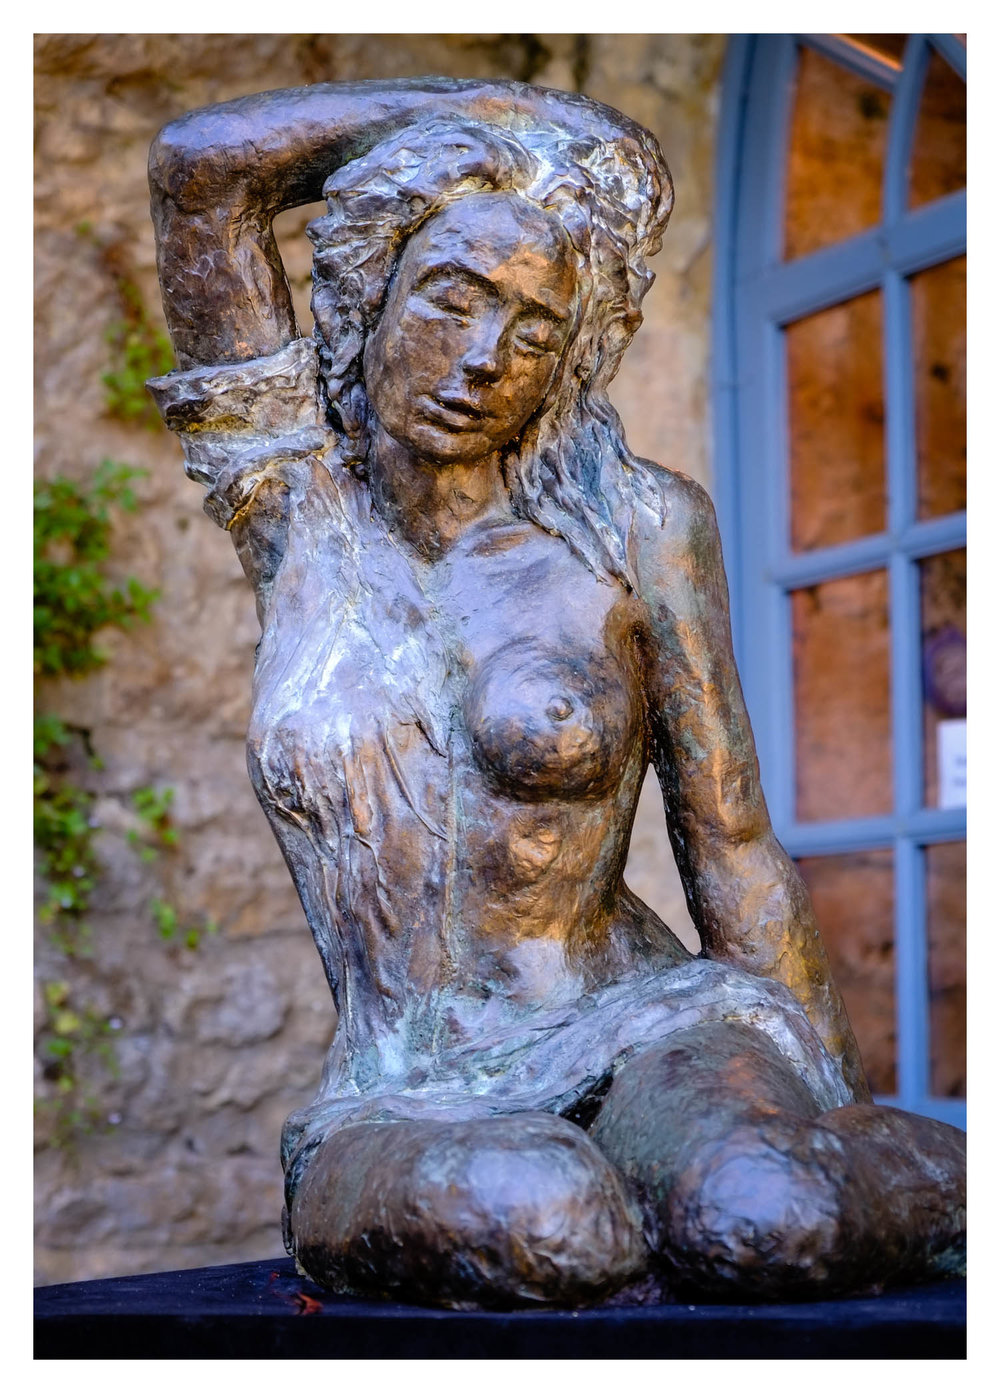 Interesting statue to be out in the open, and a good sample of background separation with the Kit Lens